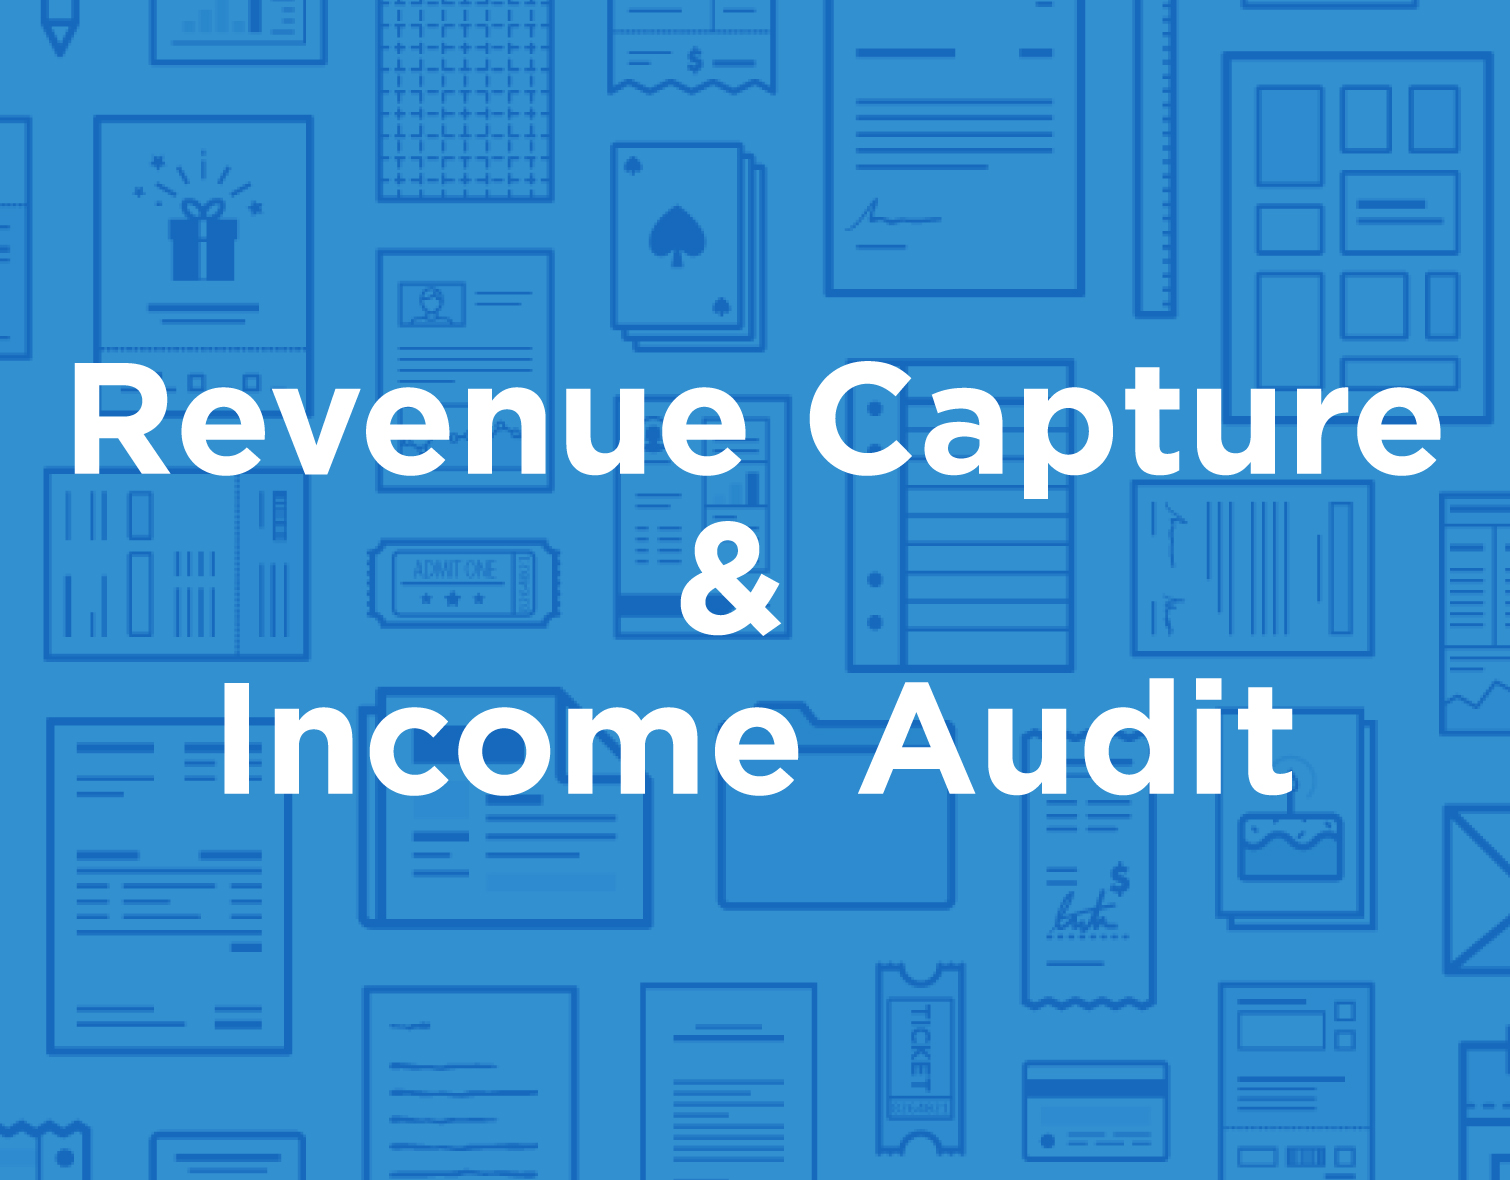 icon_Revenue-Capture_&_Income-Audit.jpg